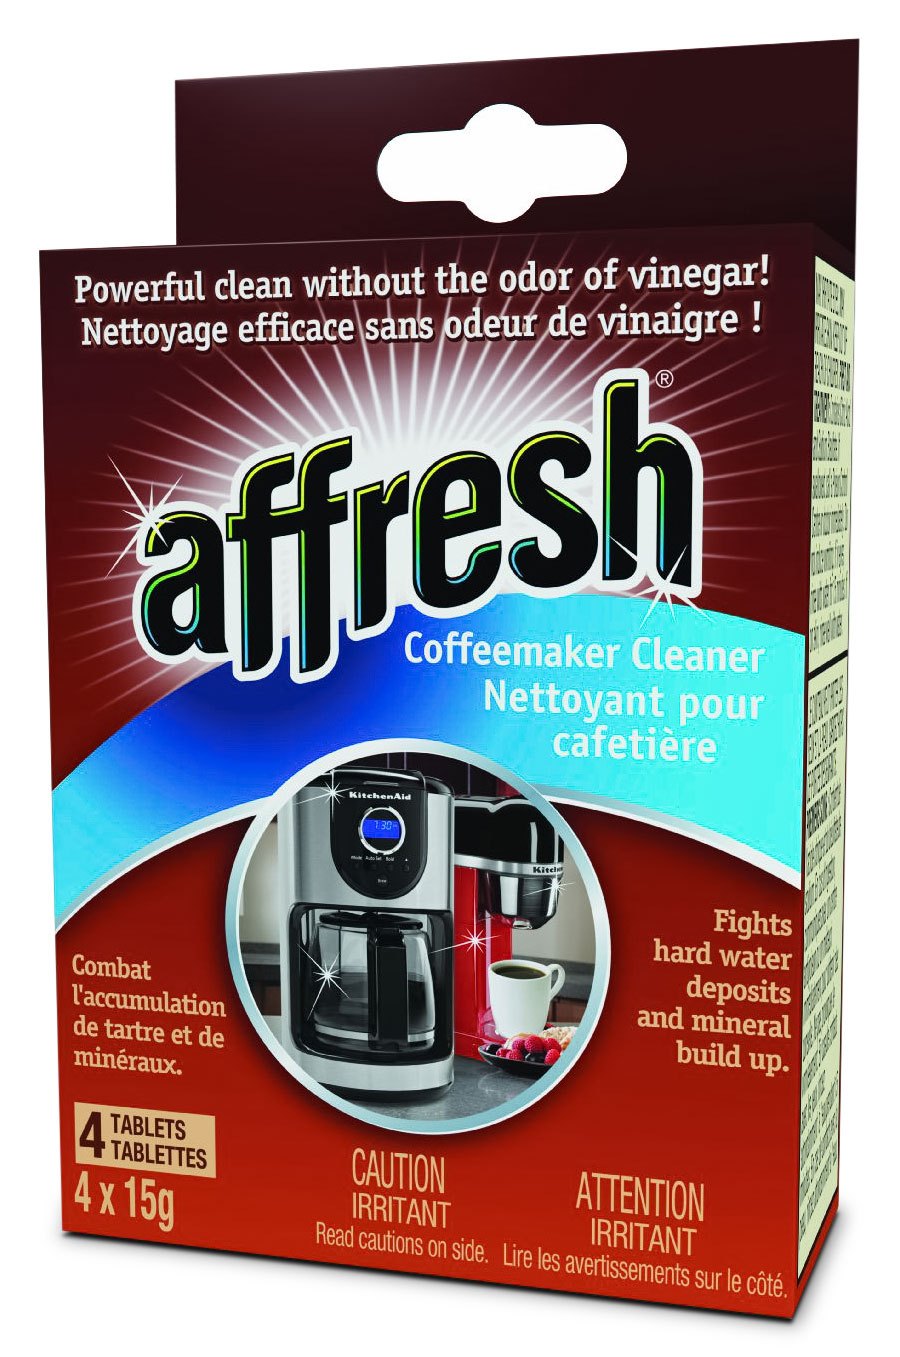 Washers and Dryers - Affresh Coffeemaker Cleaner